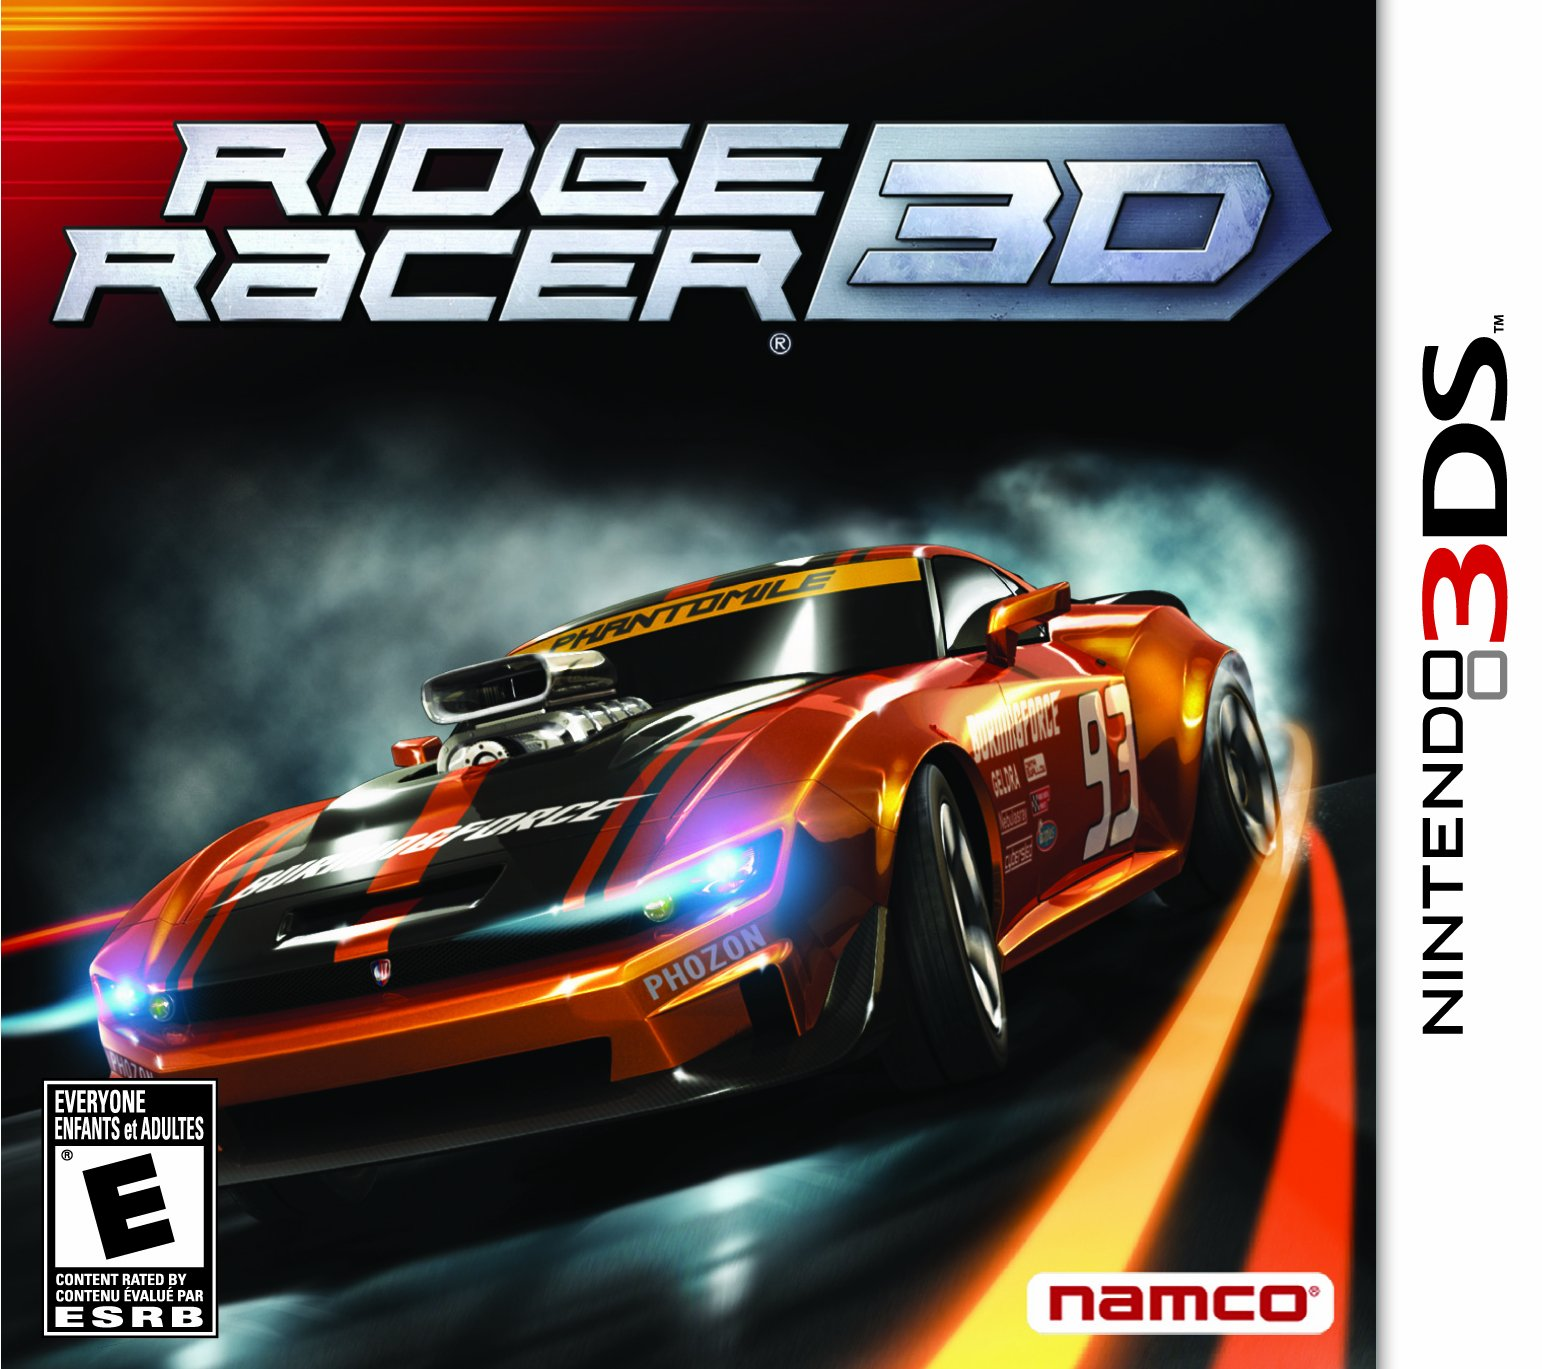 Ridge Racer 3D - Nintendo 3DS